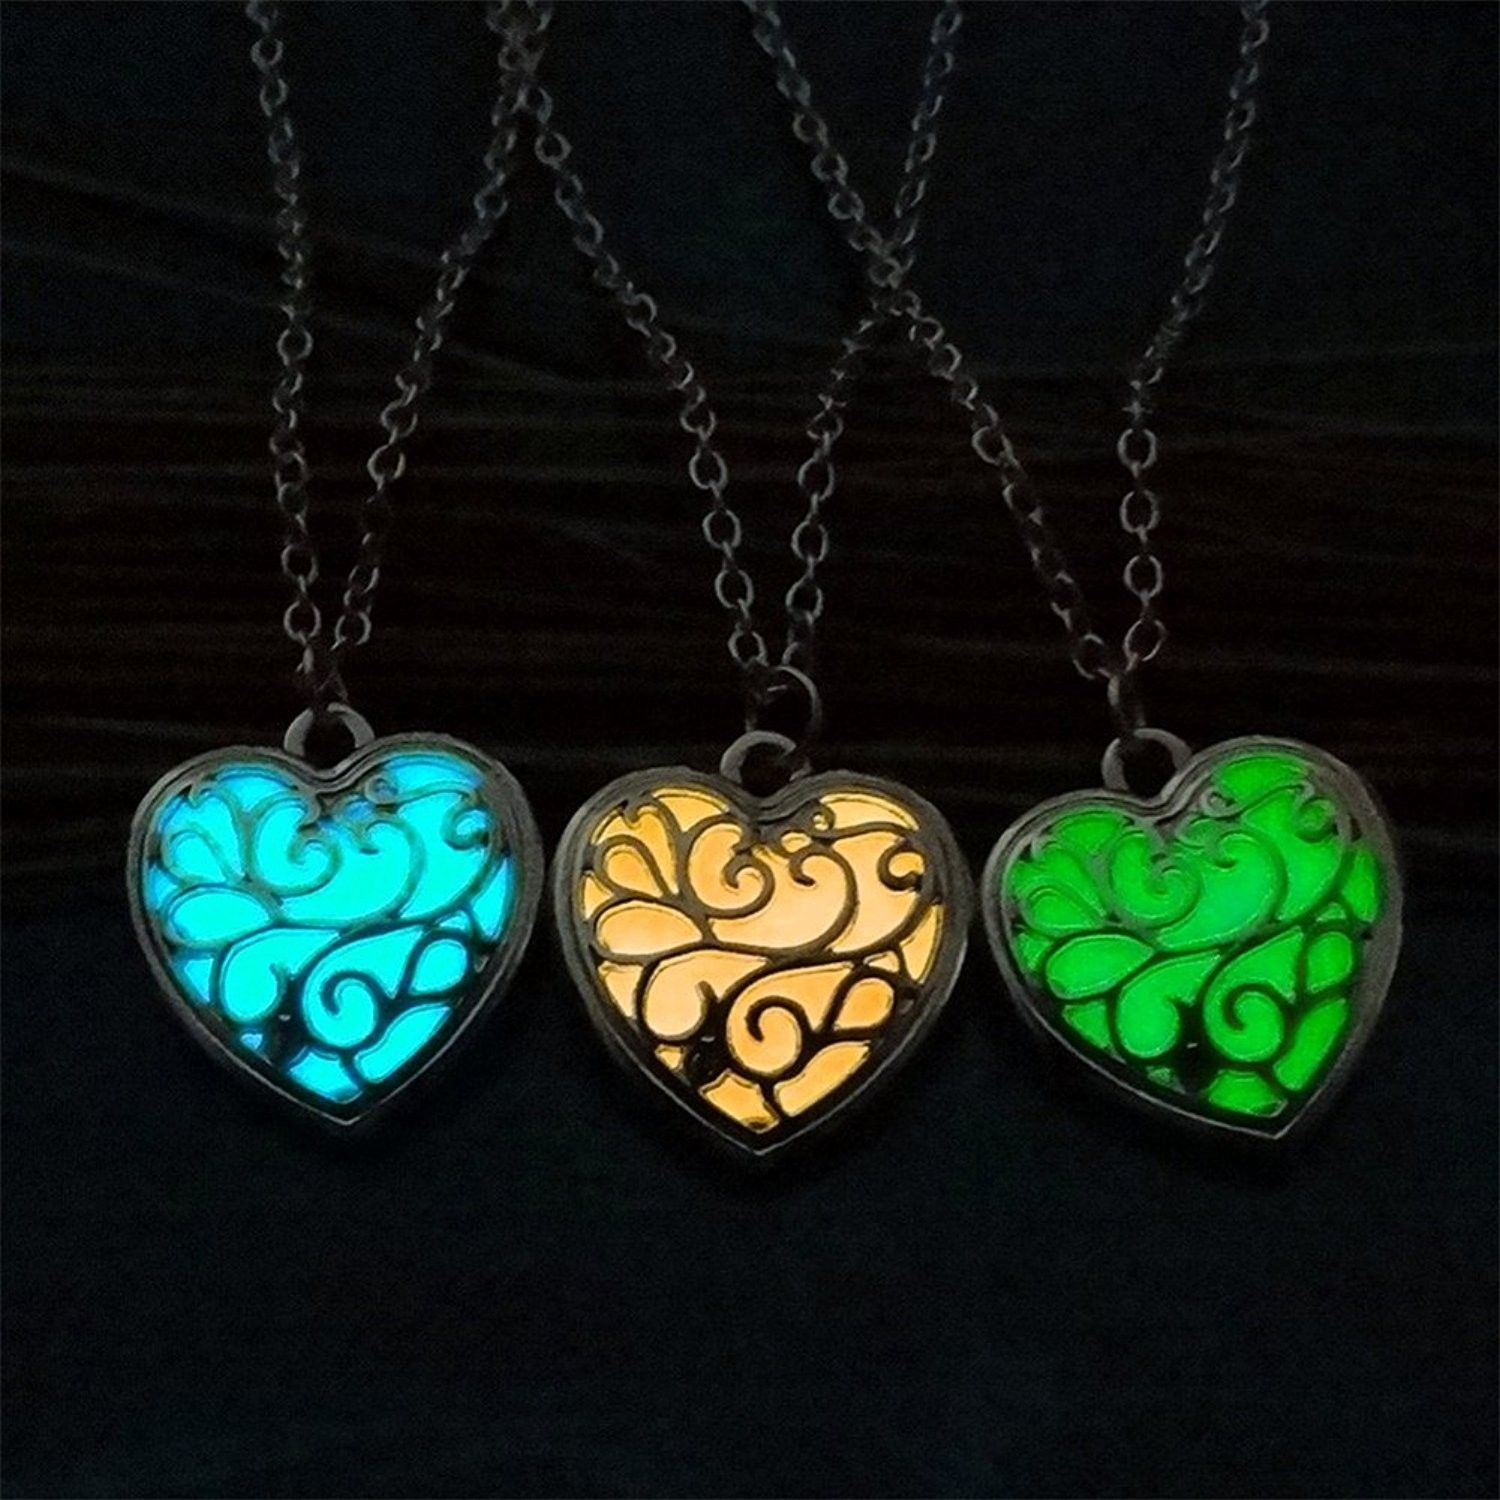 Shop, Necklaces, Chains, Vintage Heart Love Luminous Necklace Hollow For Recent Luminous Florals Pendant Necklaces (View 21 of 25)